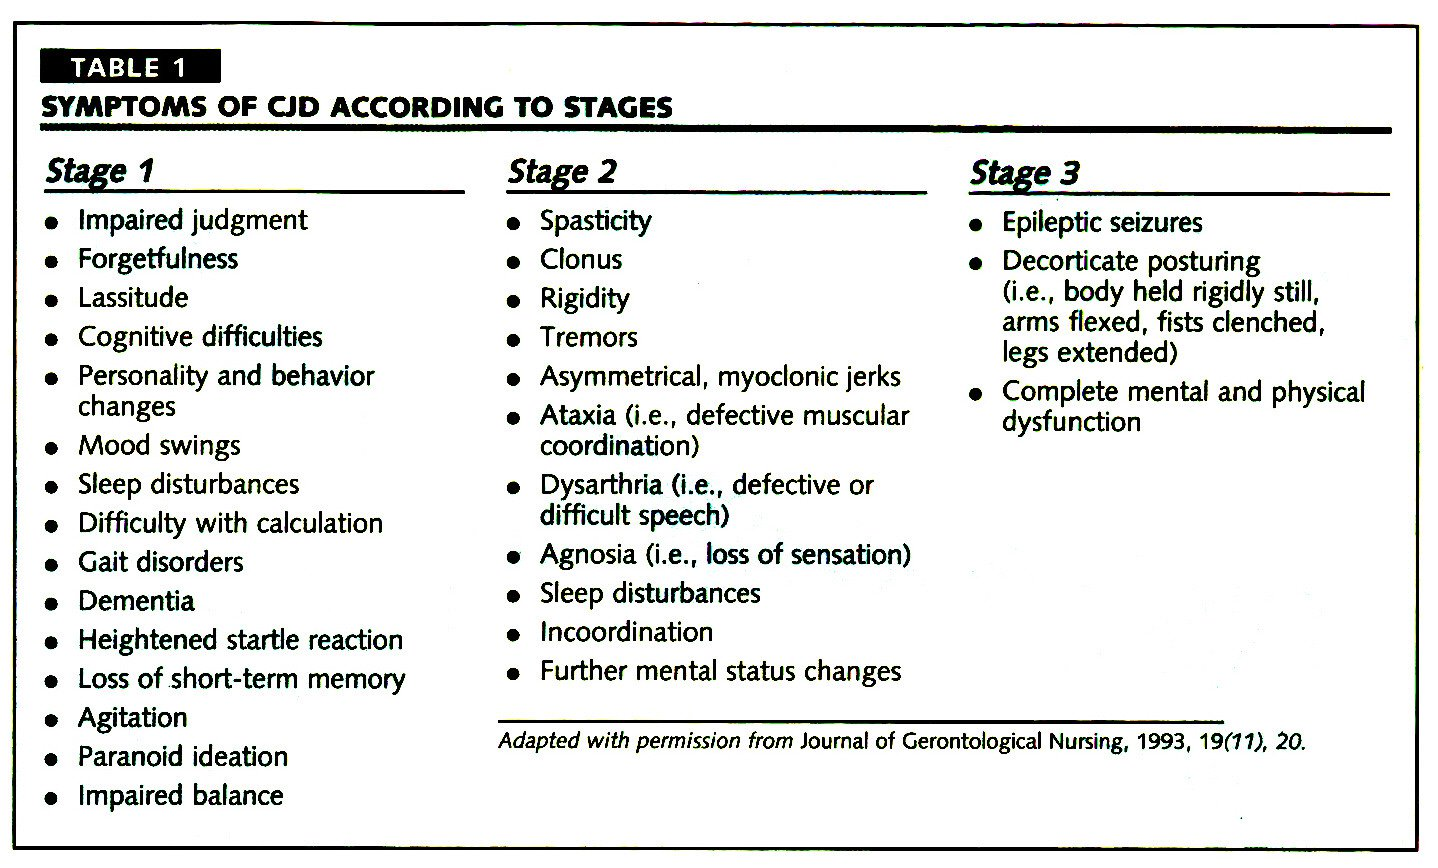 TABLE 1SYMPTOMS OF OD ACCORDING TO STAGES